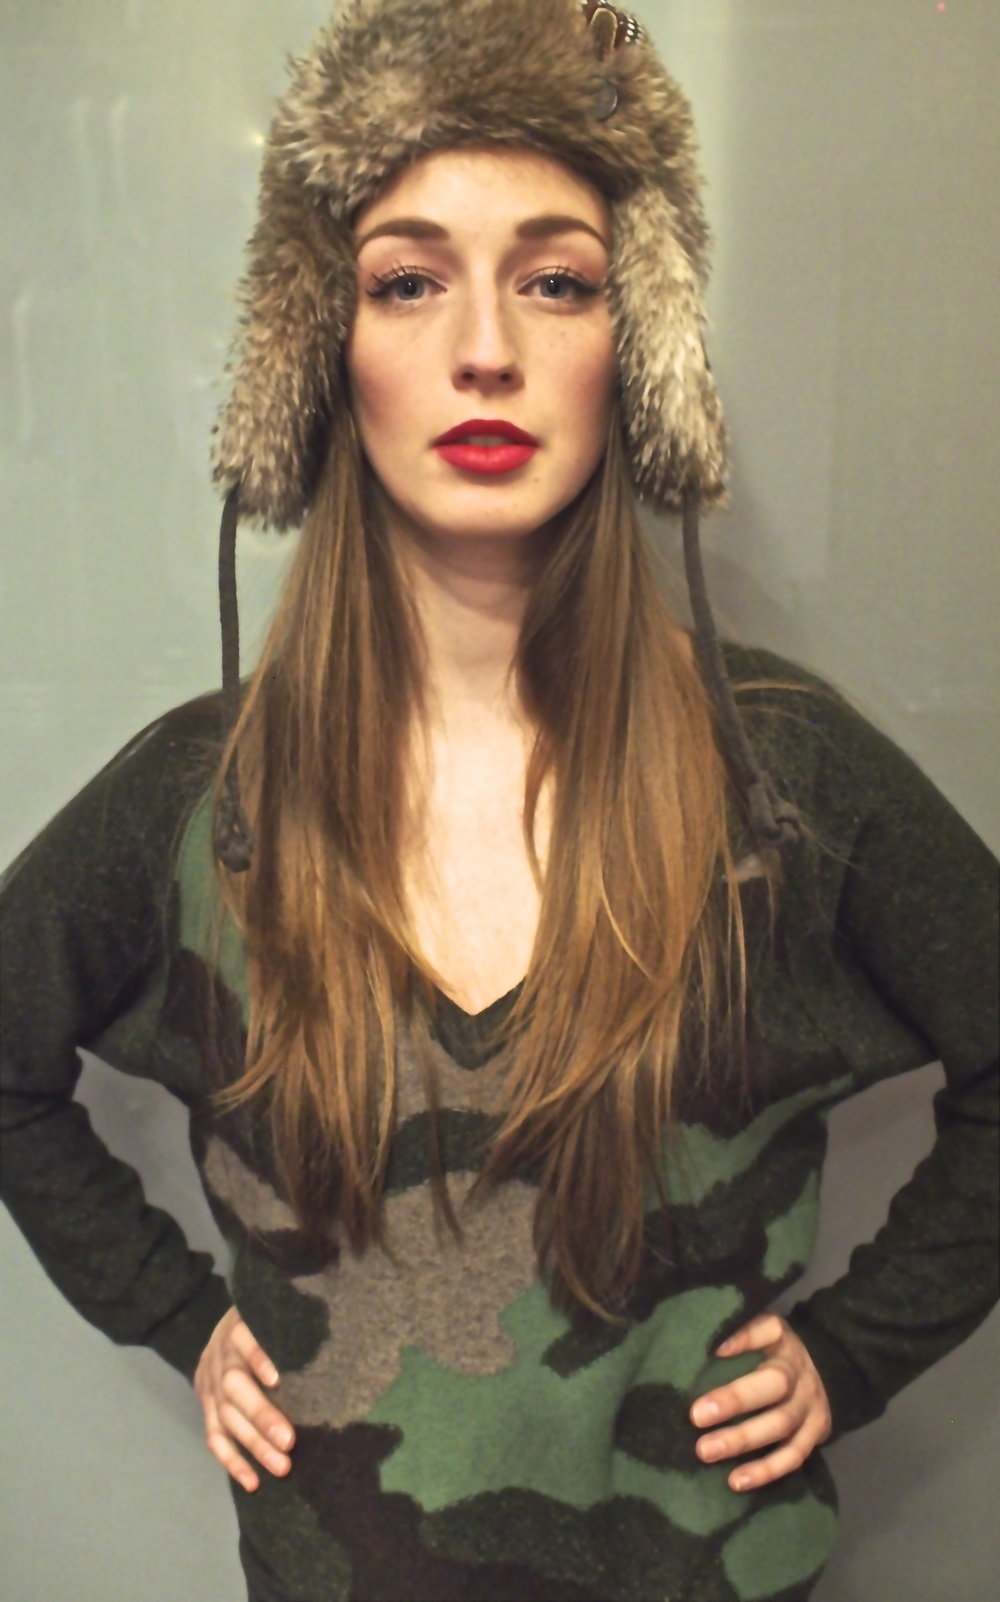 Nobis-Faux Fur Trapper Hat $75, Autumn Cashmere-Camo V Neck Sweater $375, JBrand Skinny Jean $269